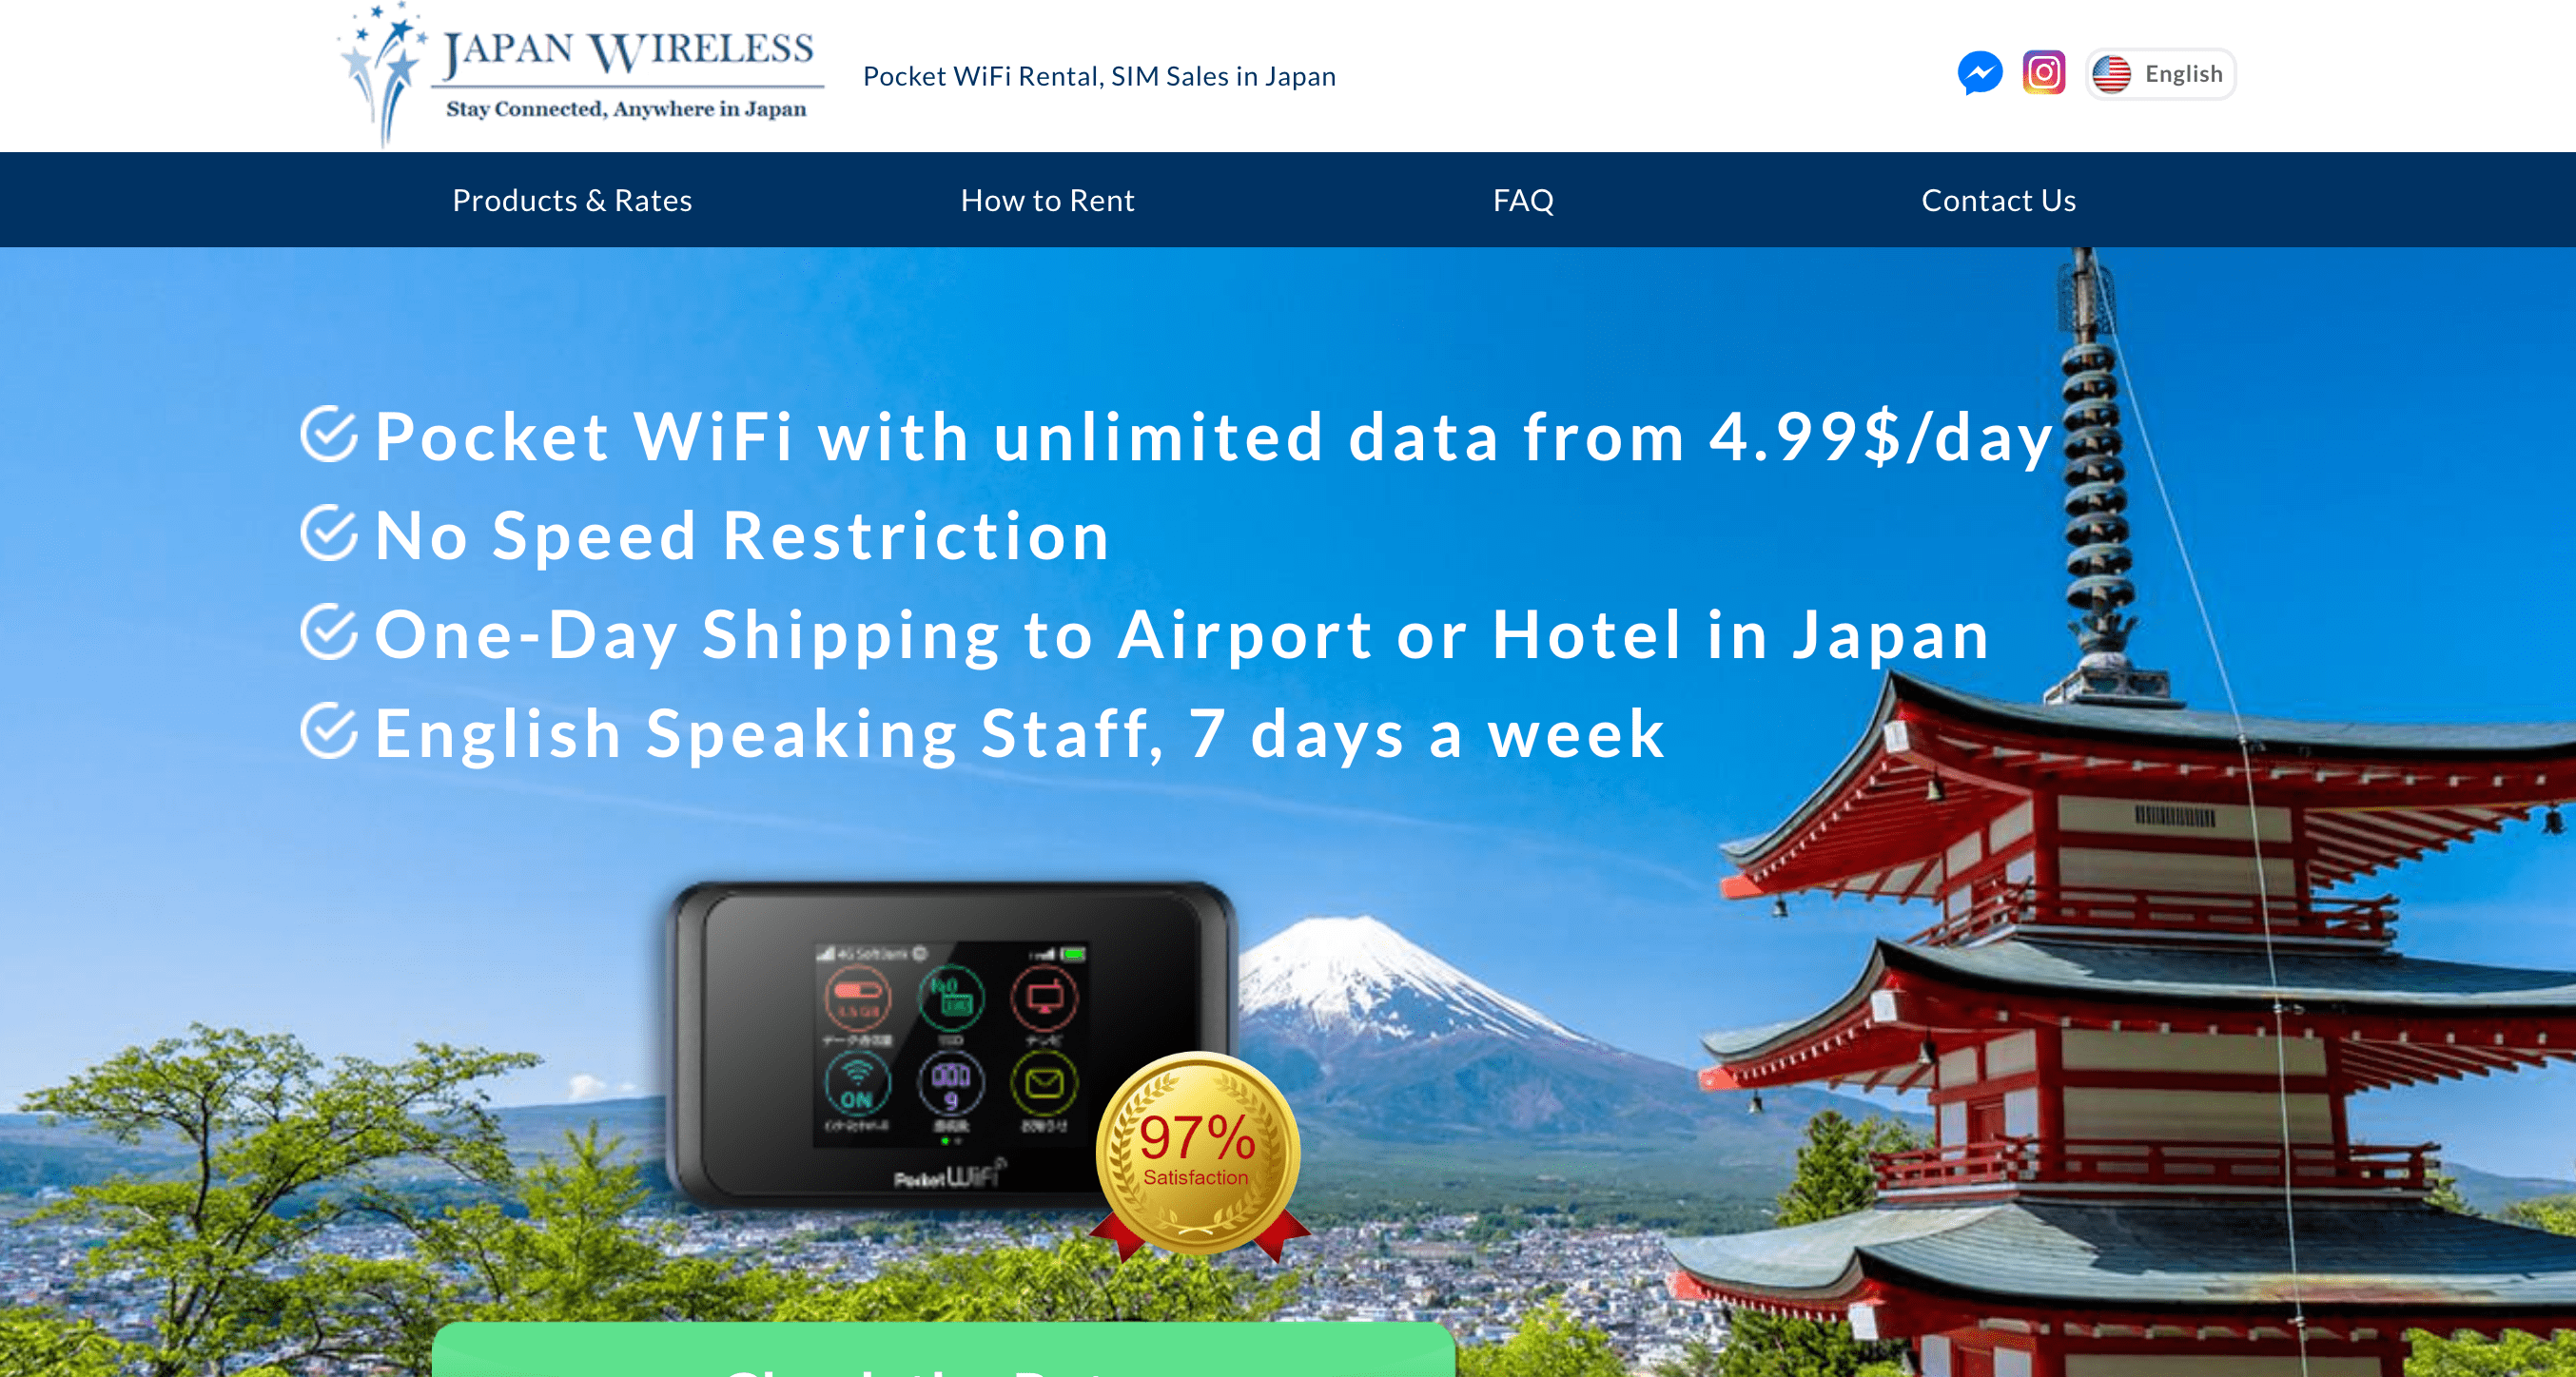 Which Pocket WiFi Rental Company is the Best in Japan 2019? - Japan